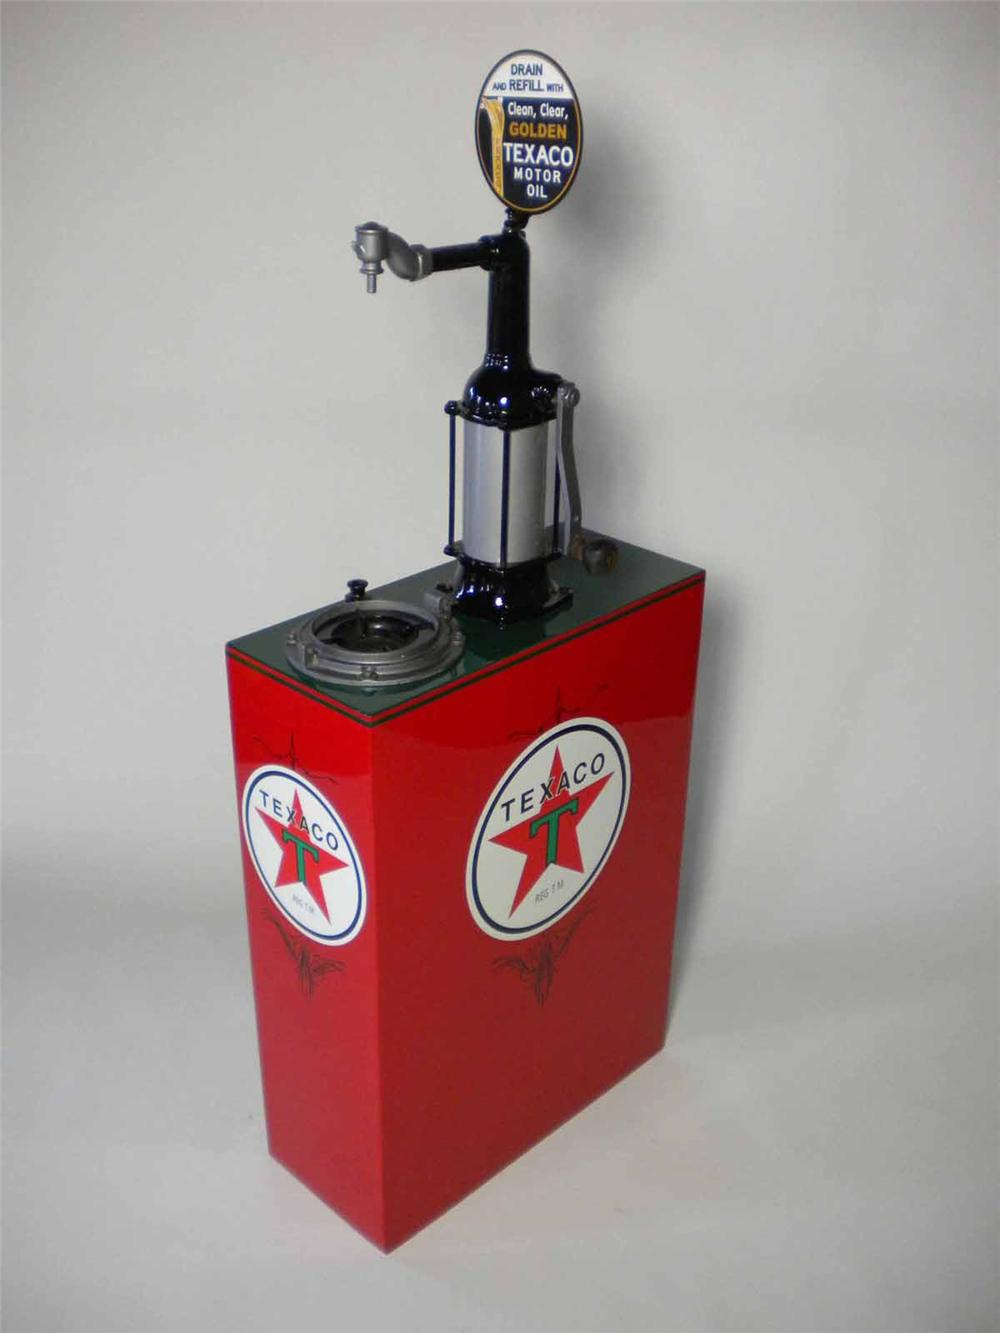 Perfectly restored 1930s Texaco service station 30 gallon hand crank oil lubester. - Front 3/4 - 108511